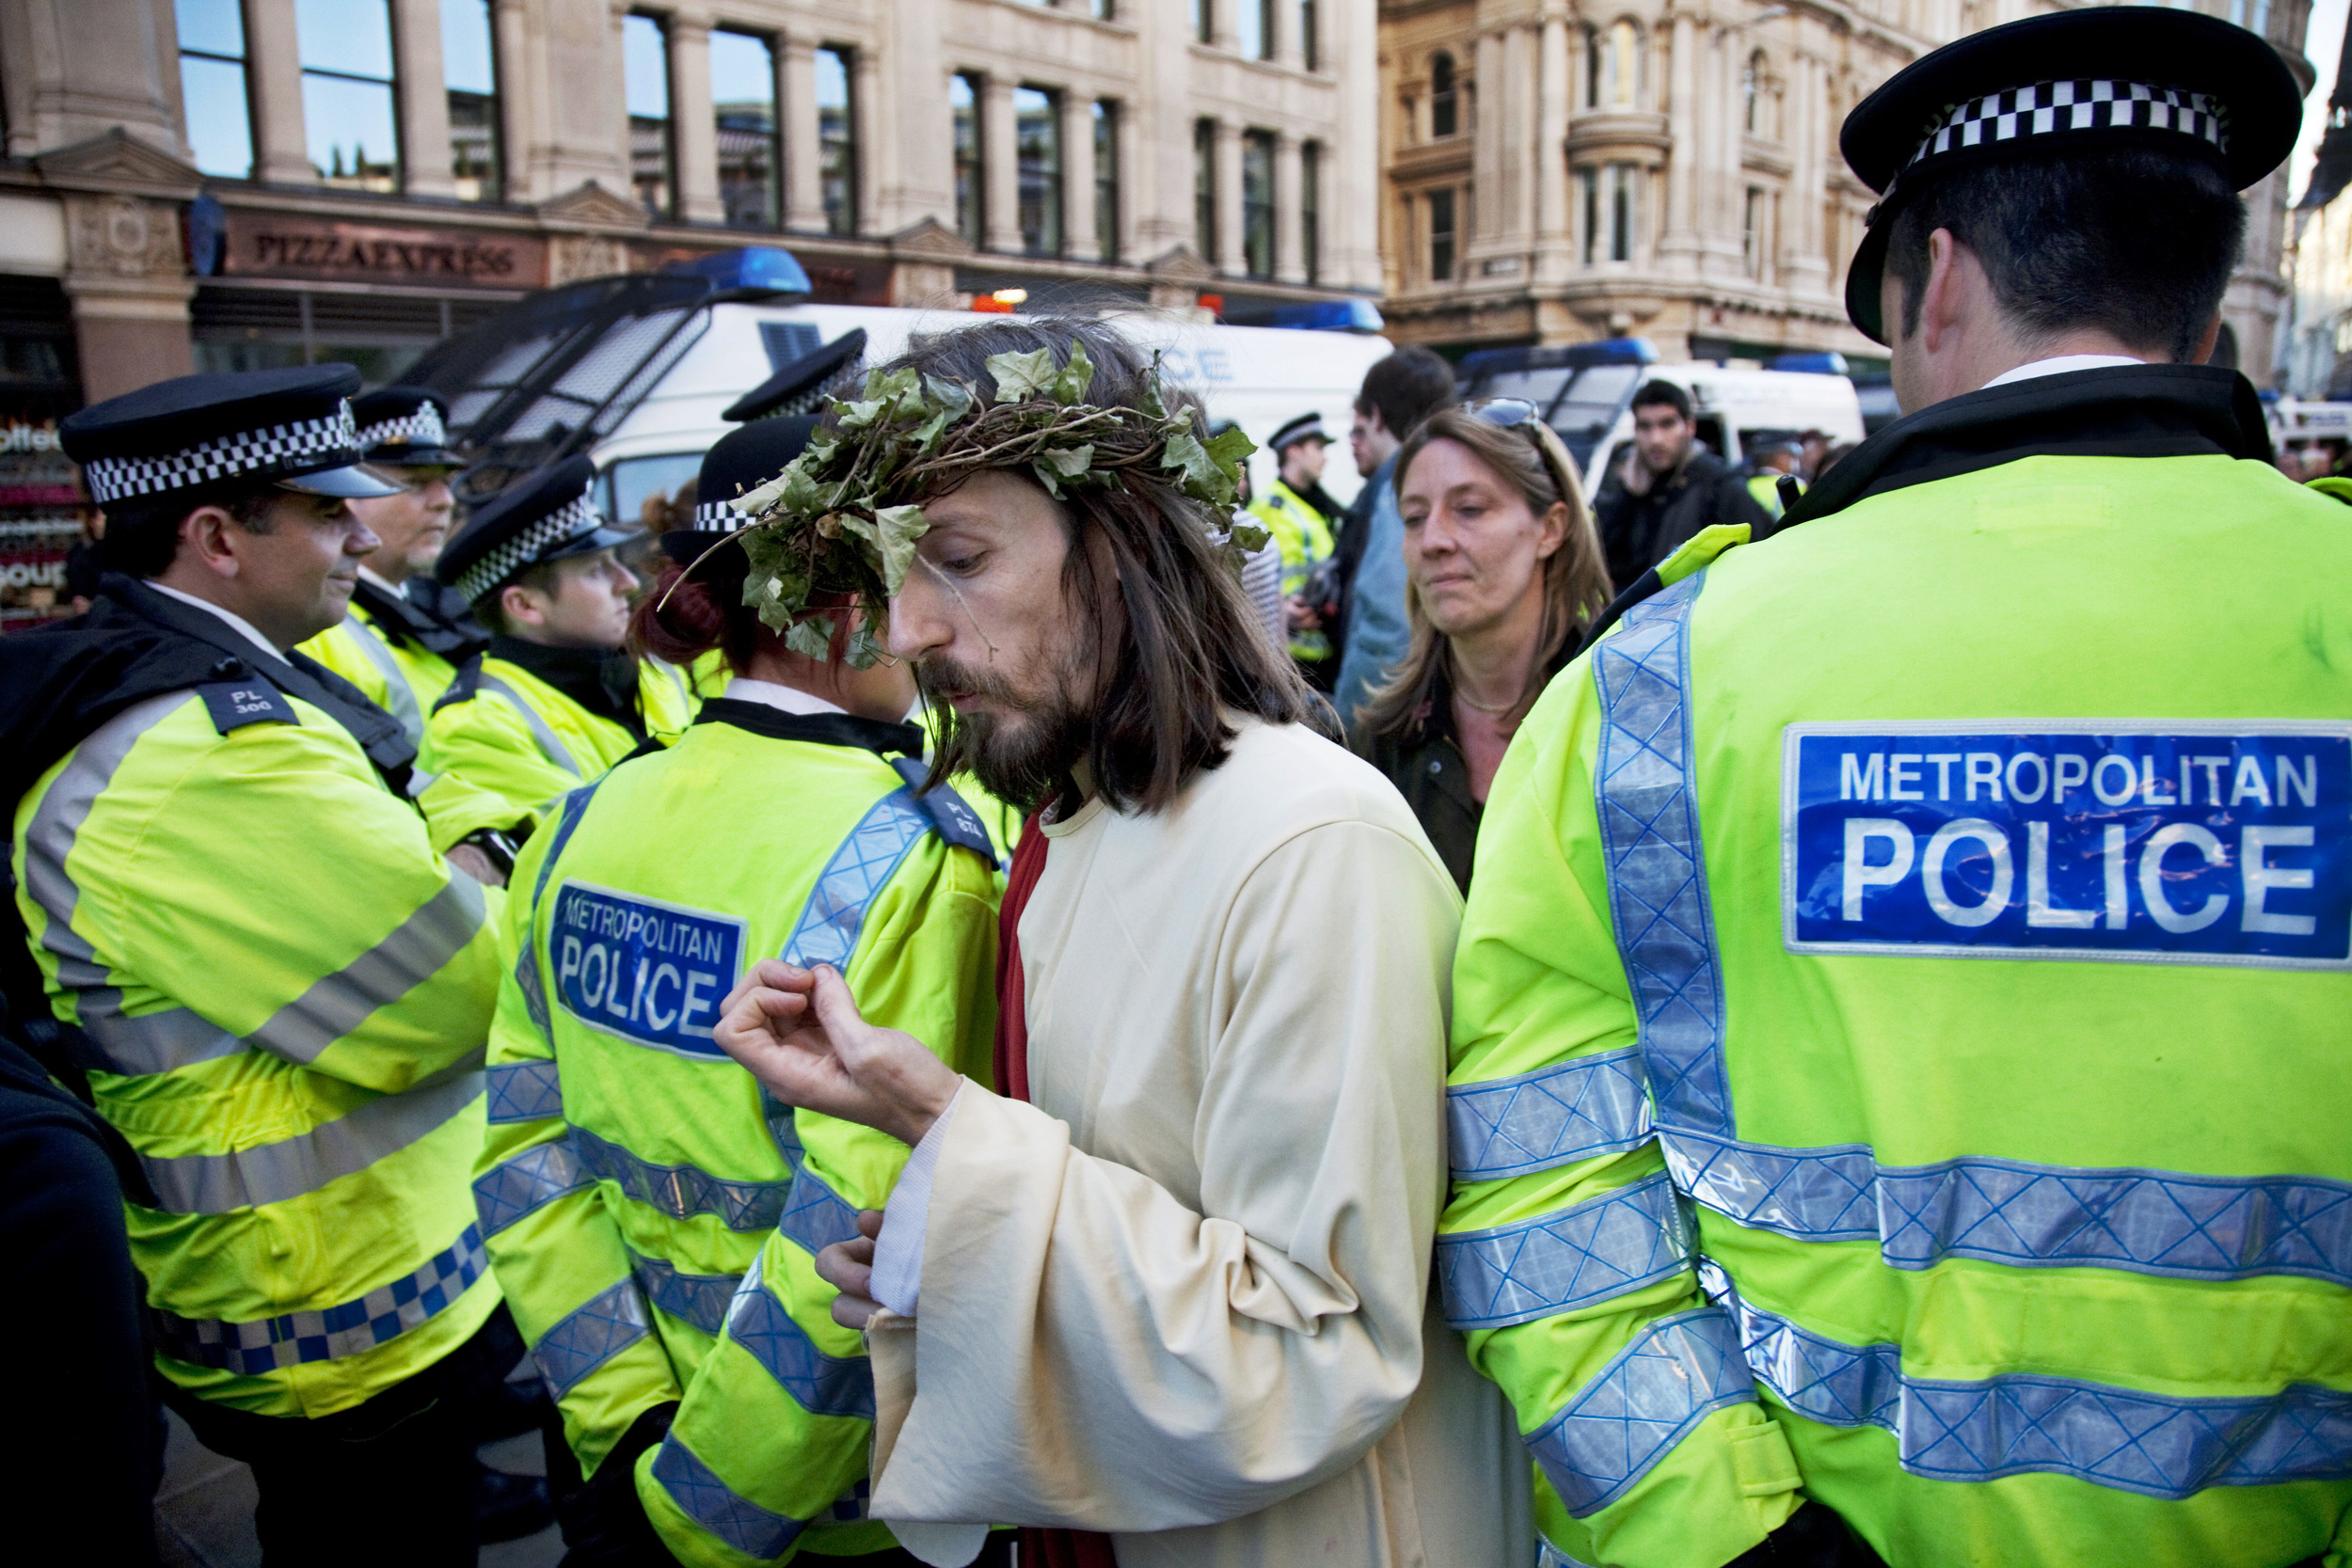 As Jesus walks through police lines at the Occupy London protest, he checks his nails.